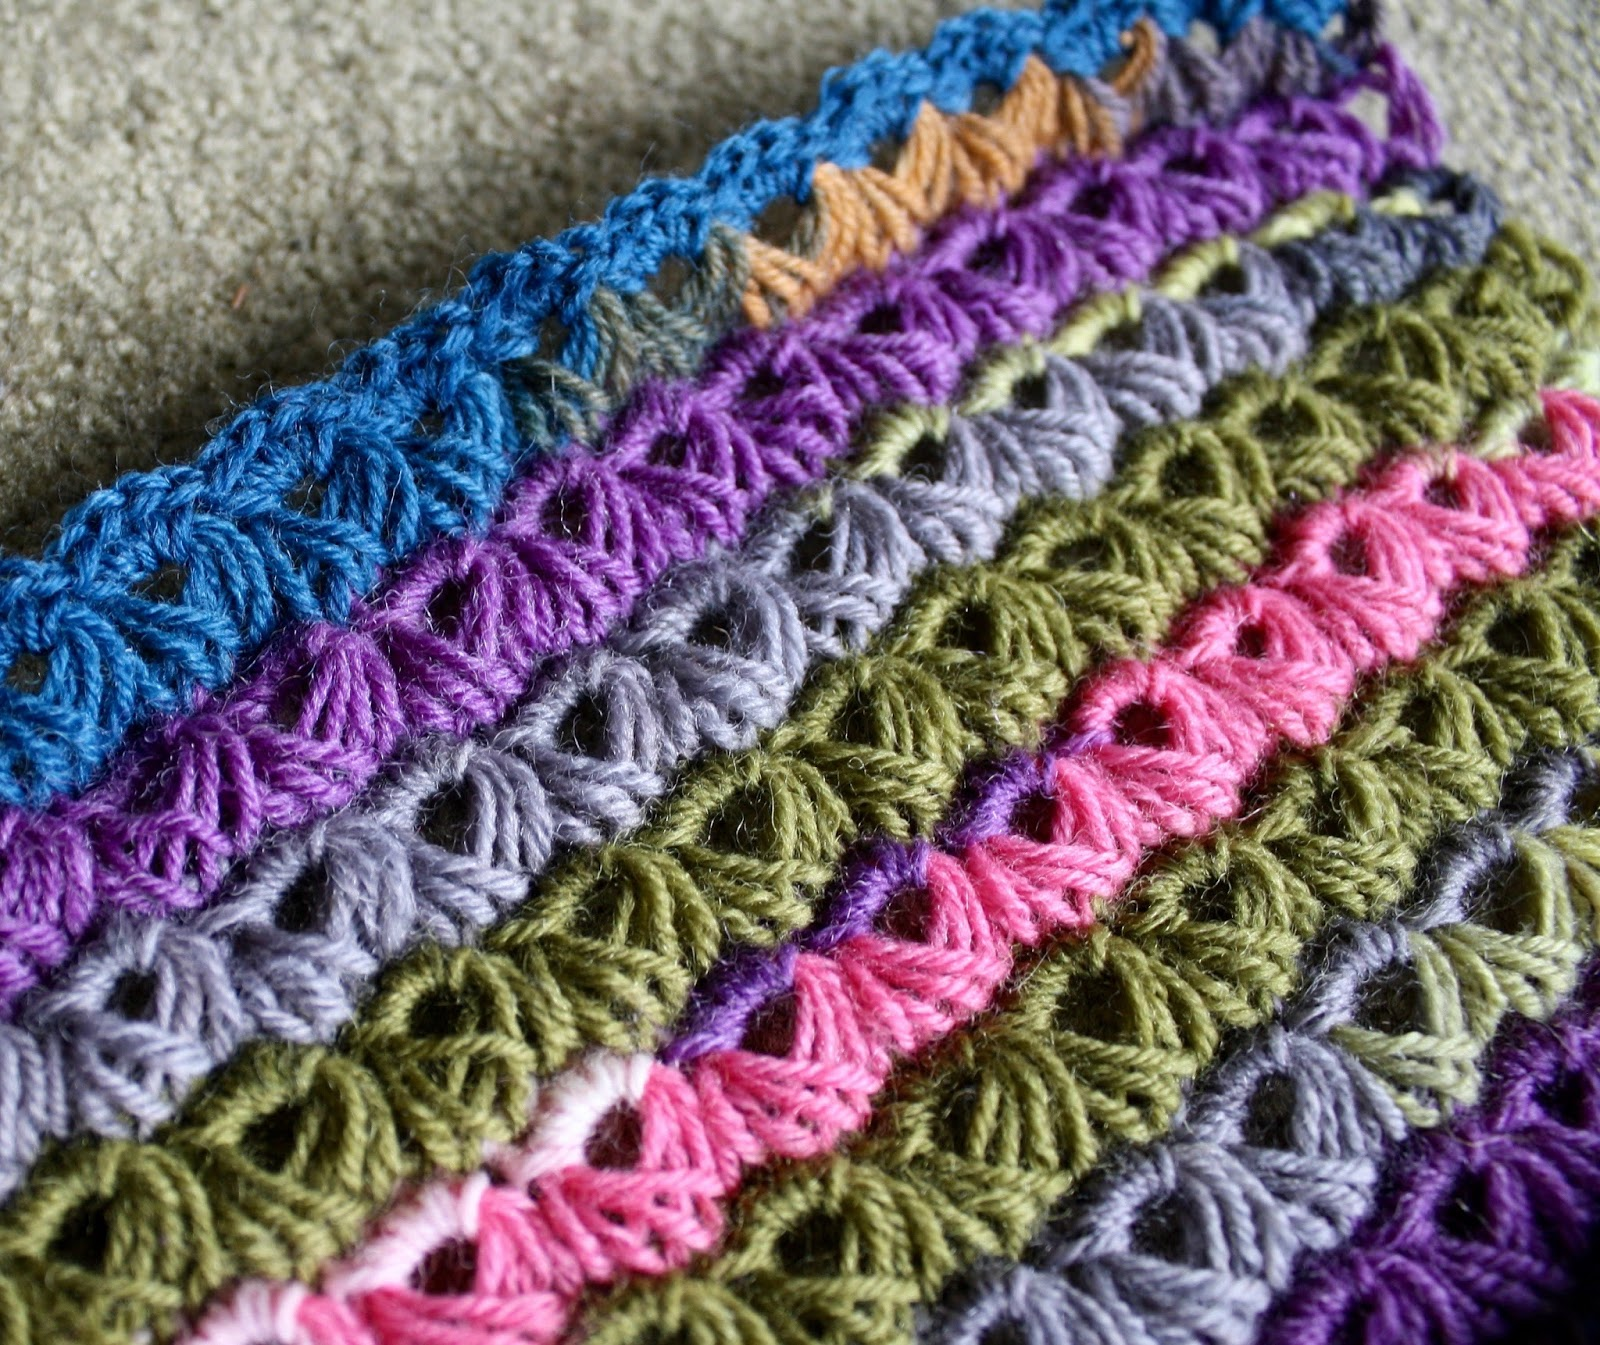 QueerJoes Knitting Blog: A New Career!!